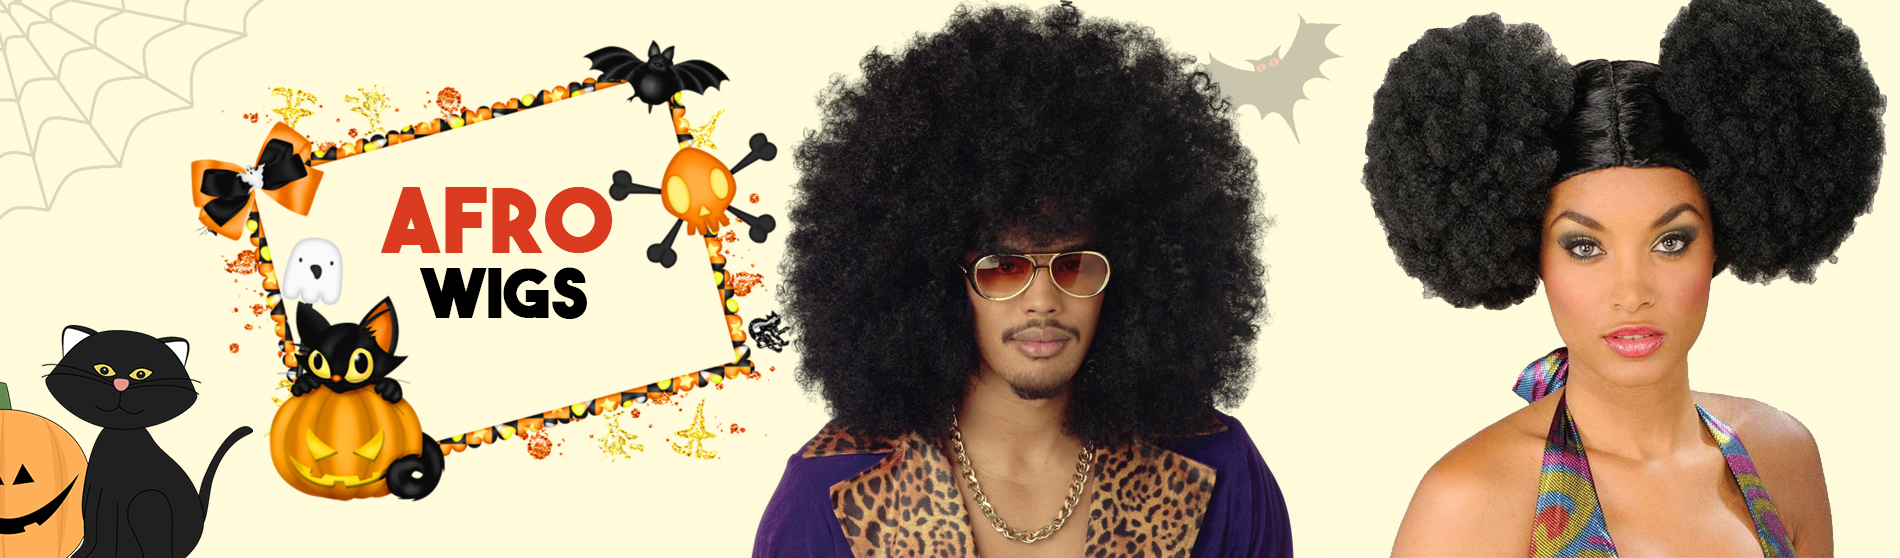 Afro-Wigs